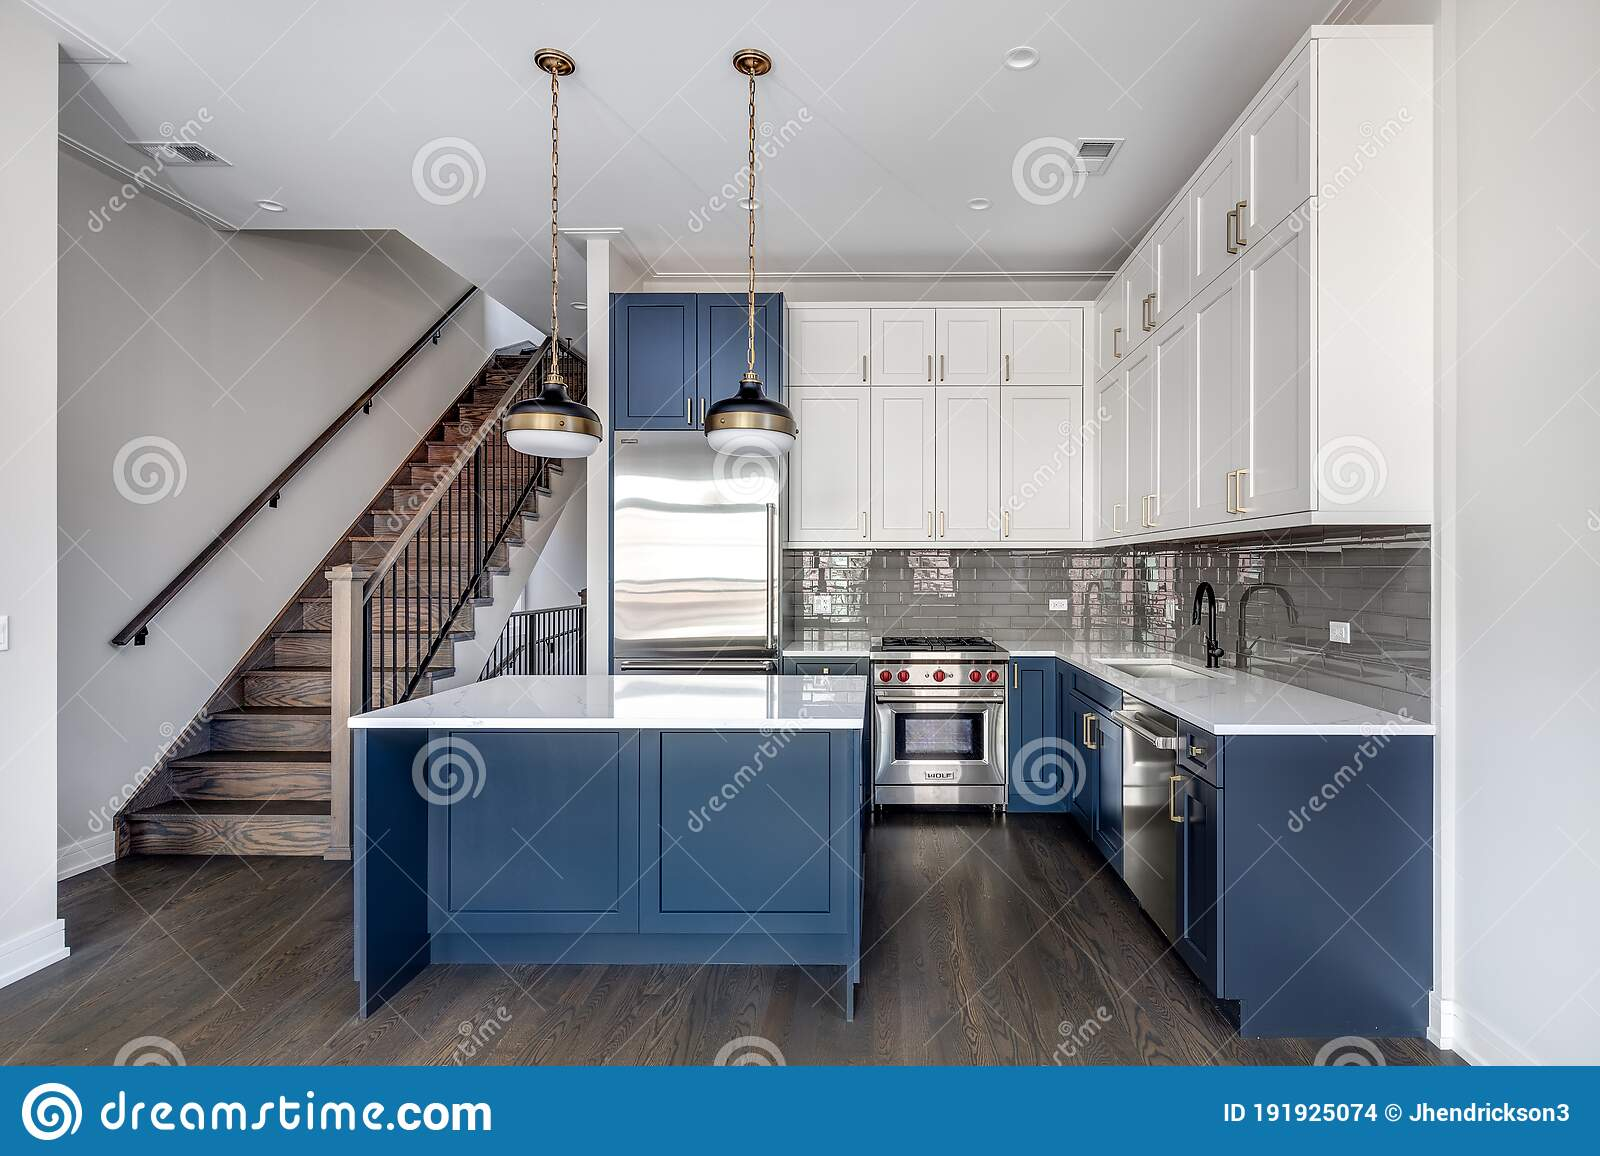 A Modern White And Blue Kitchen With The Lights Off Editorial Stock Image Image Of Indoors Architecture 191925074